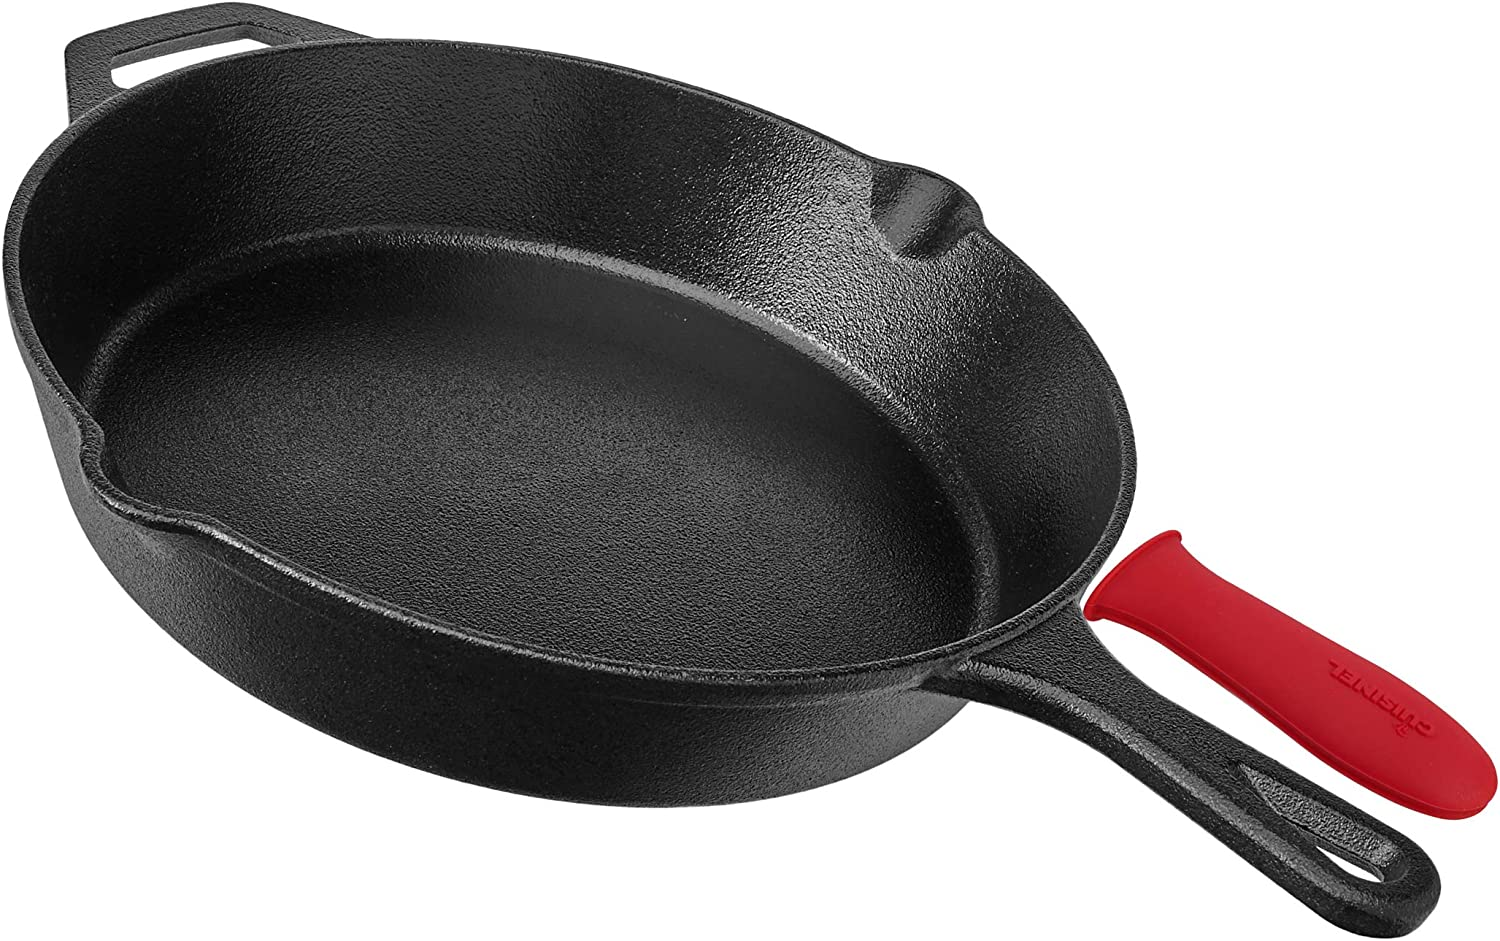 cast iron pan with handle shield